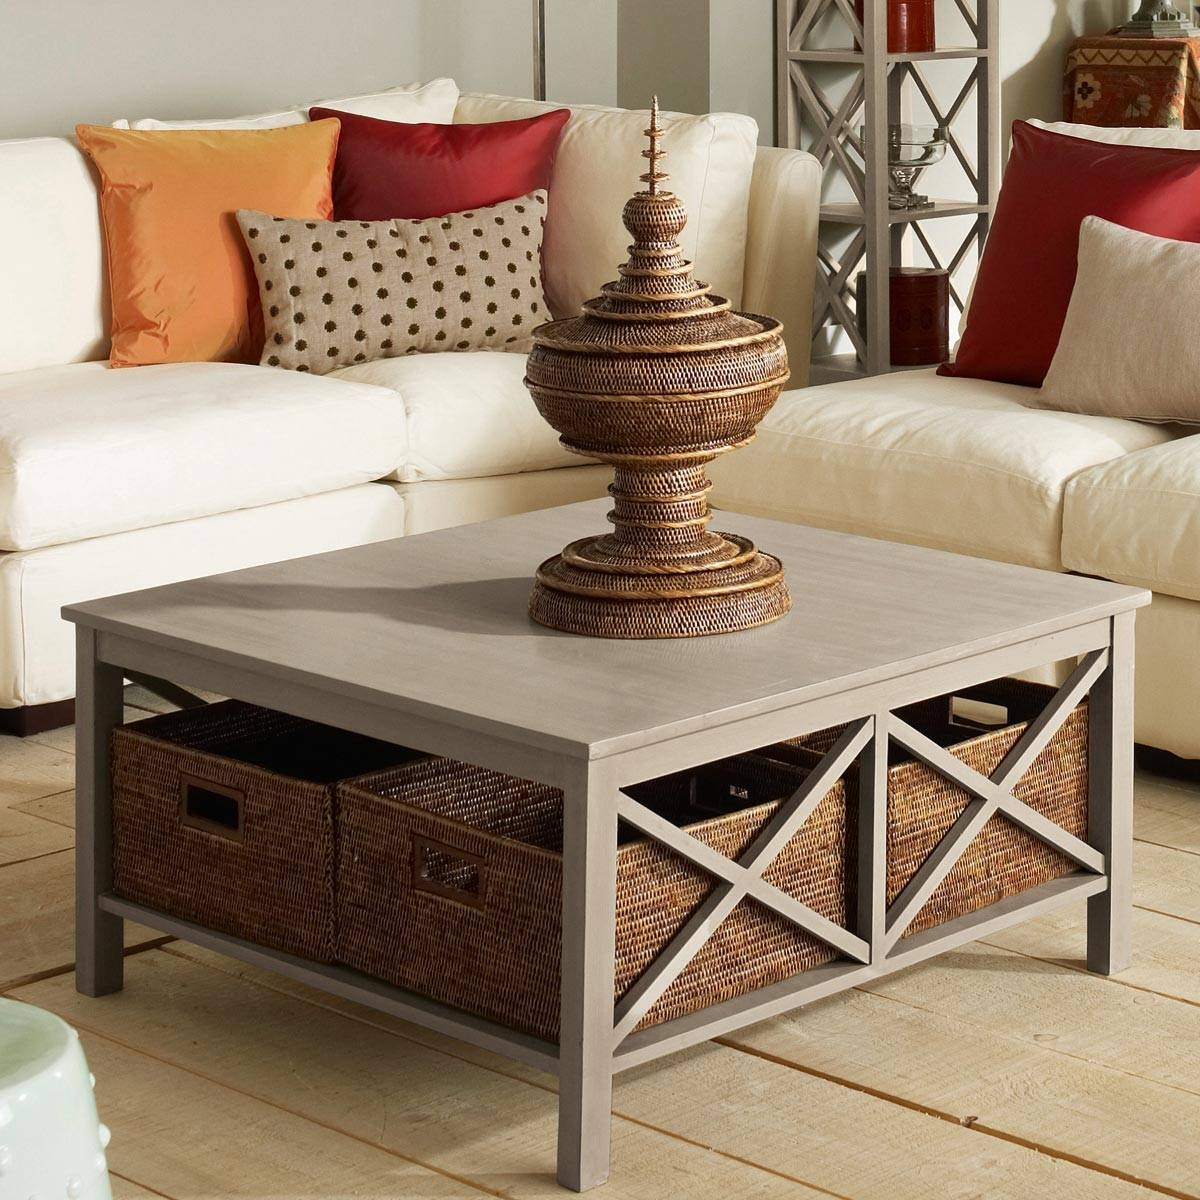 2018 popular rustic square coffee table with storage square coffee table with storage coffee tables regarding rustic square coffee table with storage watchthetrailerfo